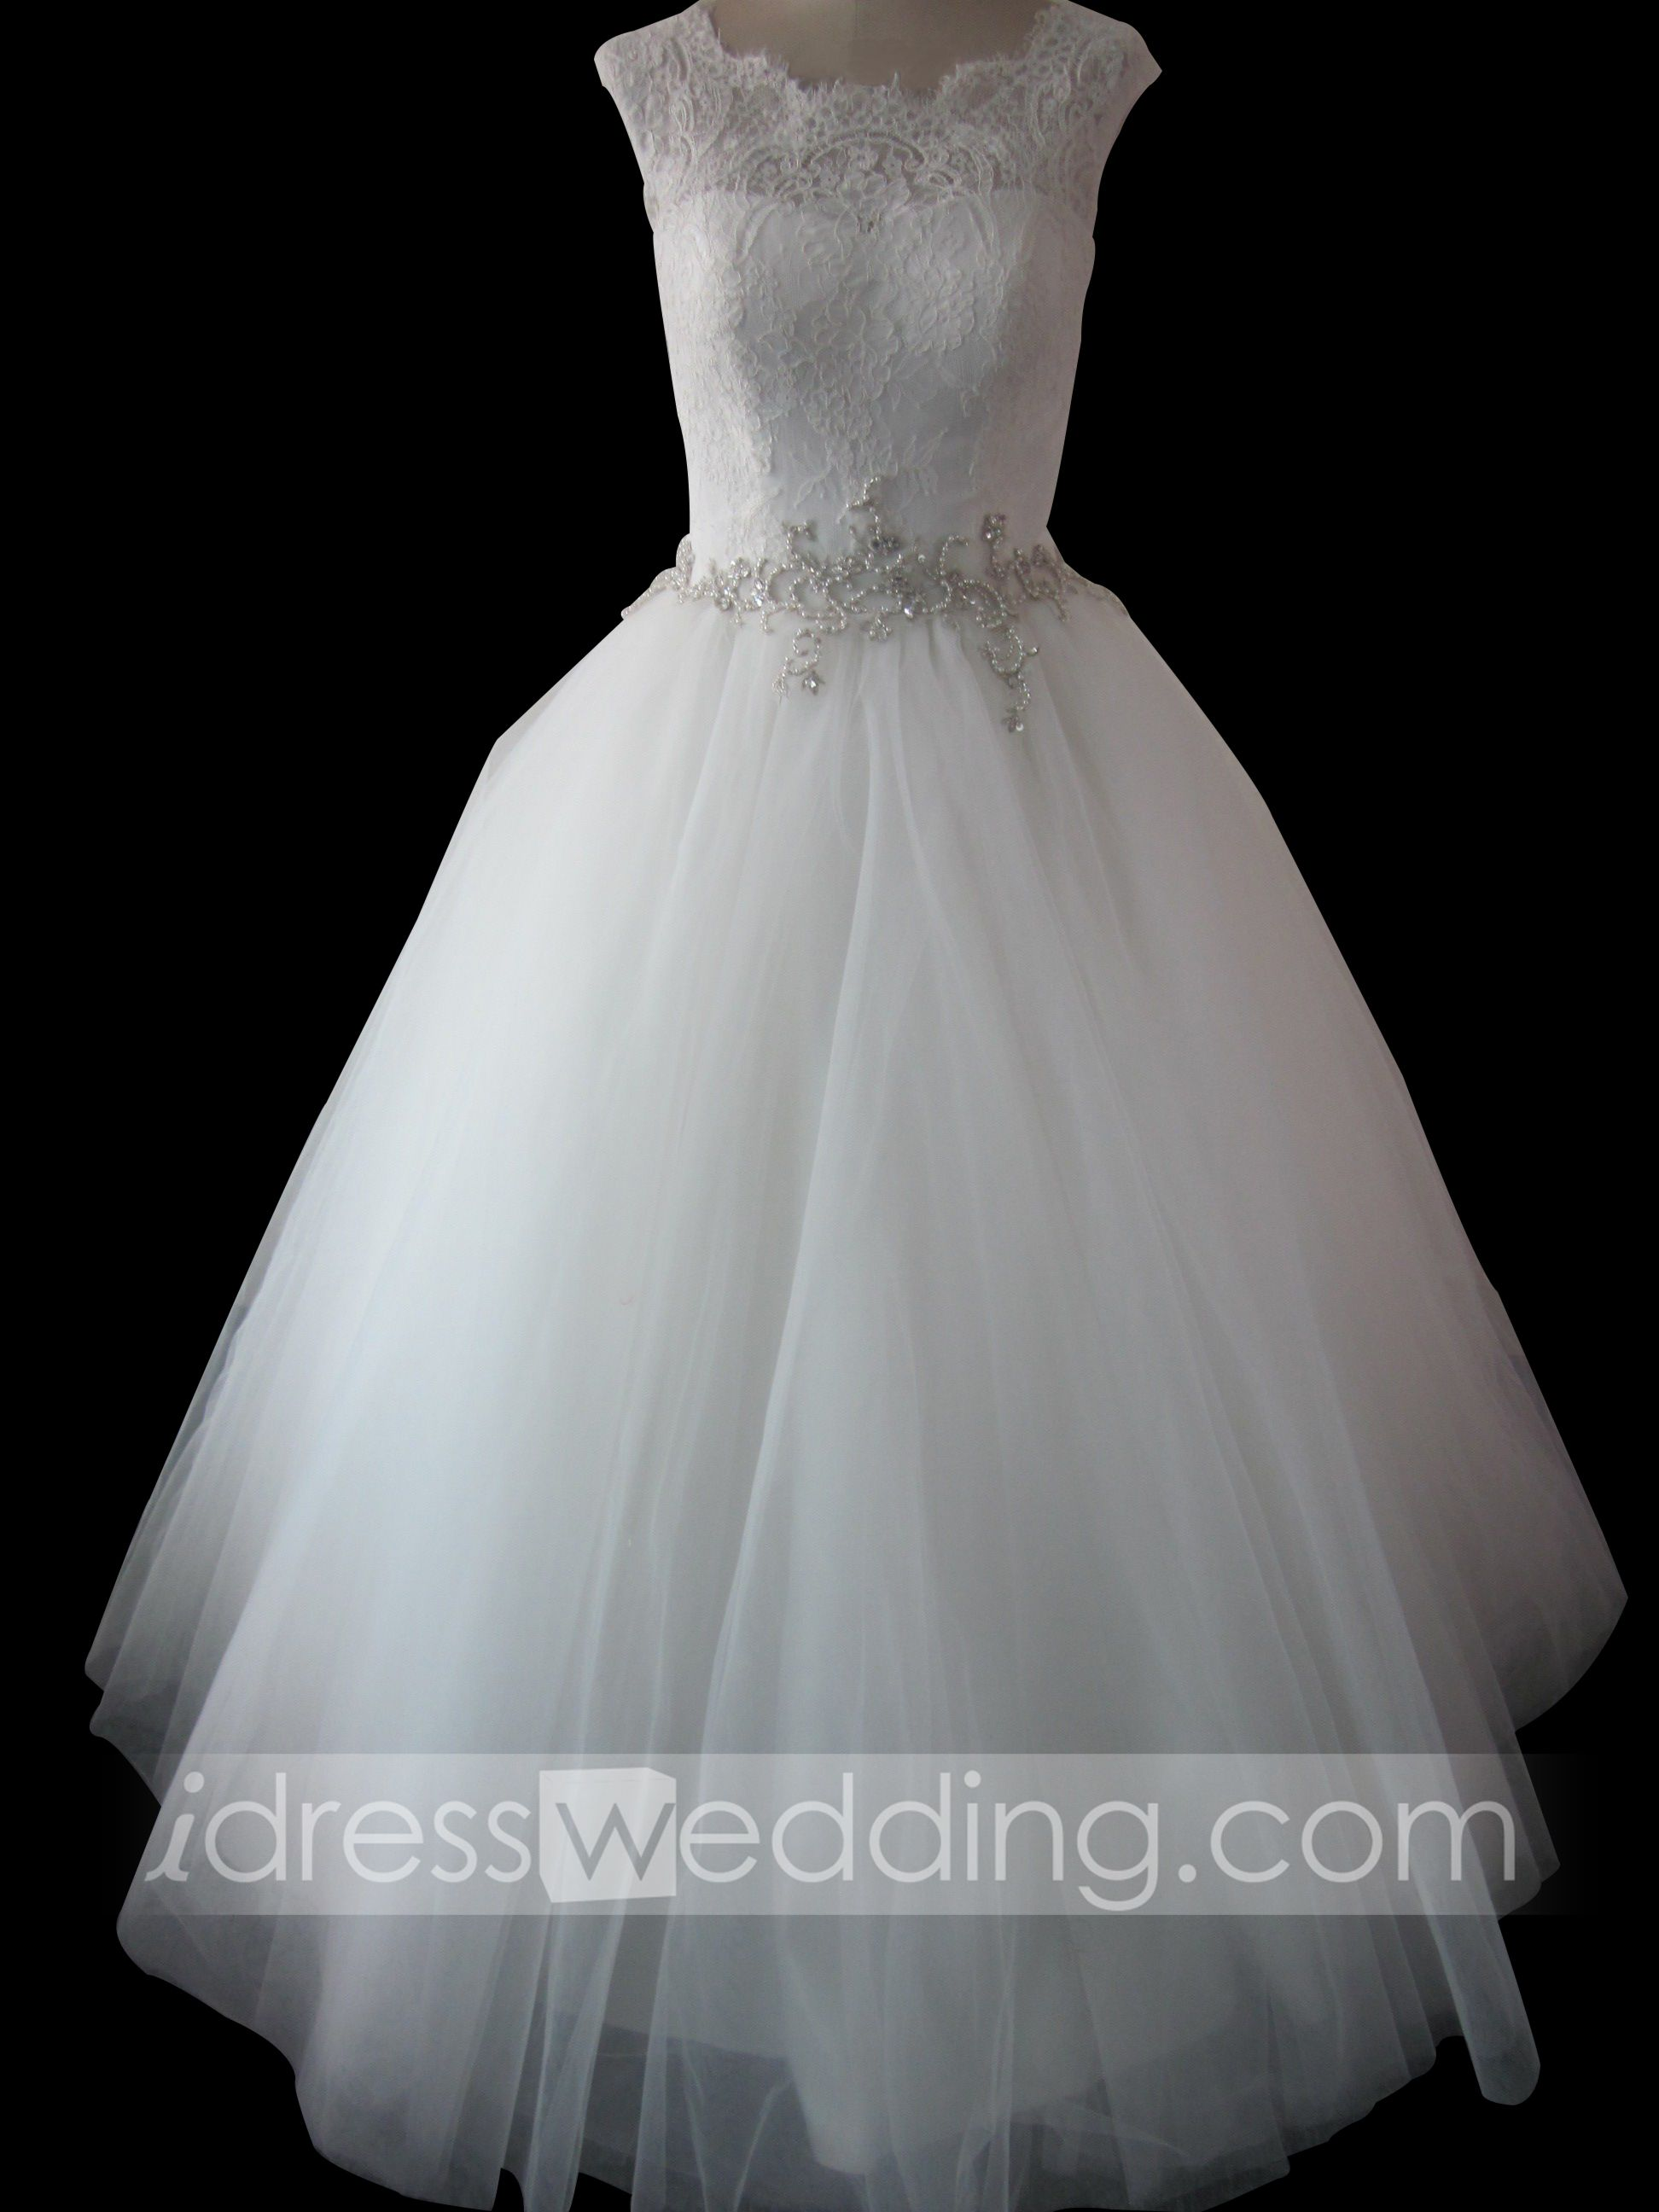 Sweetheart tea length wedding dresses with red detailing and cap